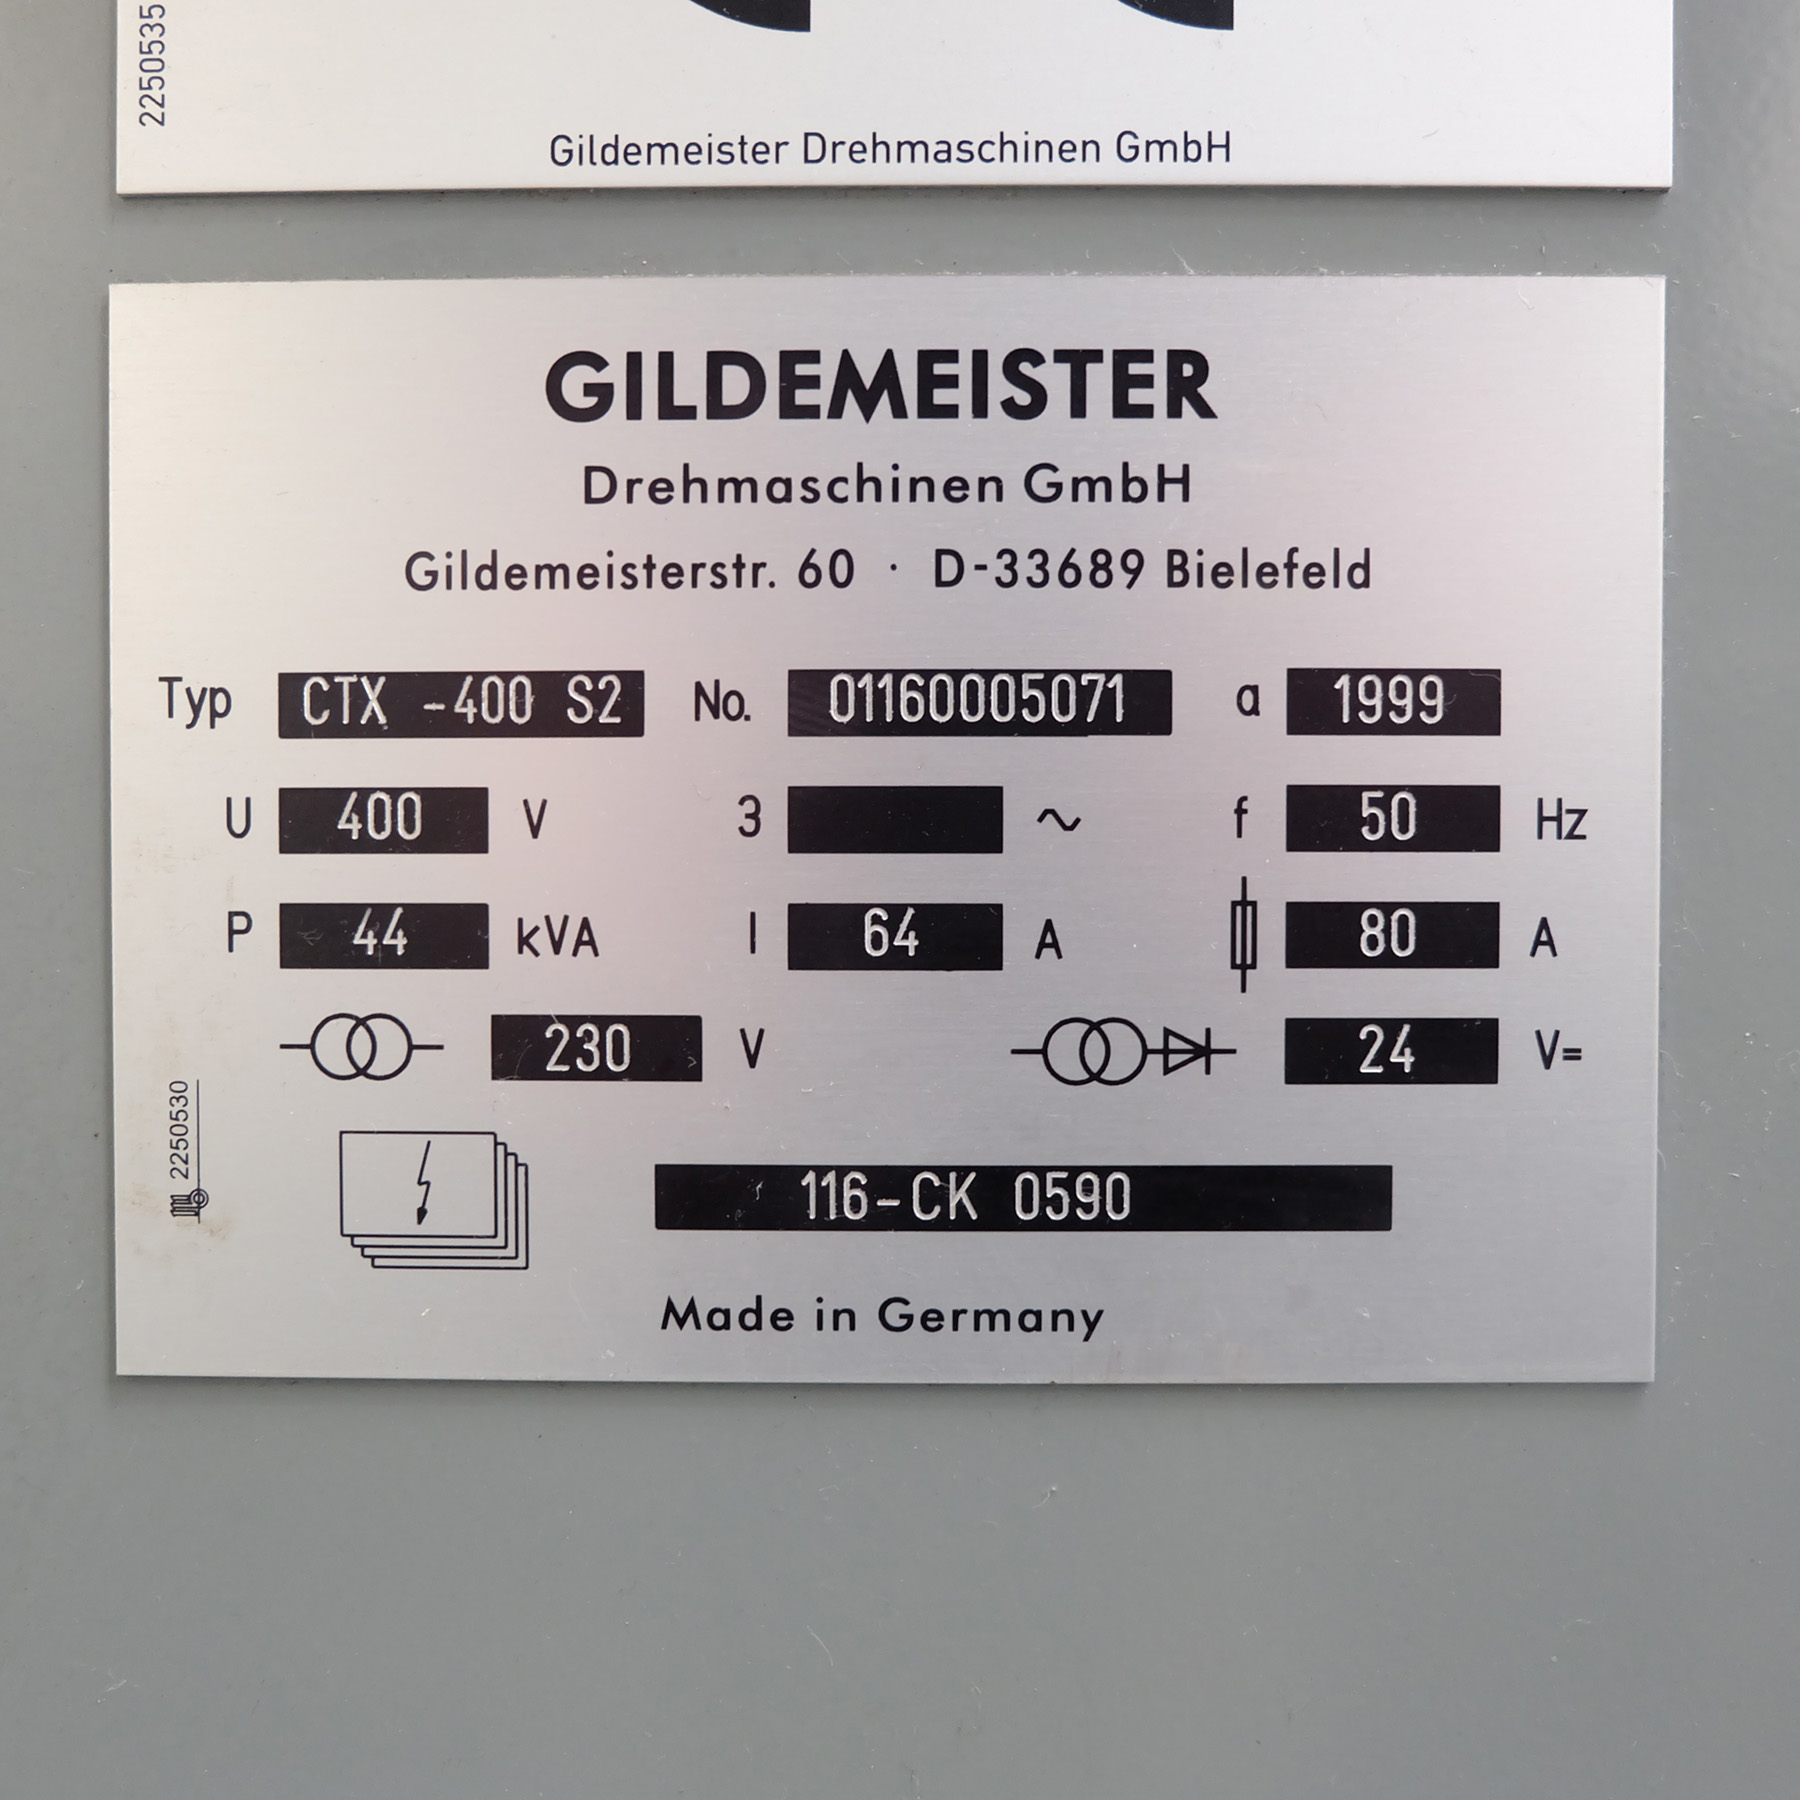 Guildermeister CTX-400 S2. CNC Turning & Milling Centre. With Heidenhain Pilot Control - Image 14 of 17